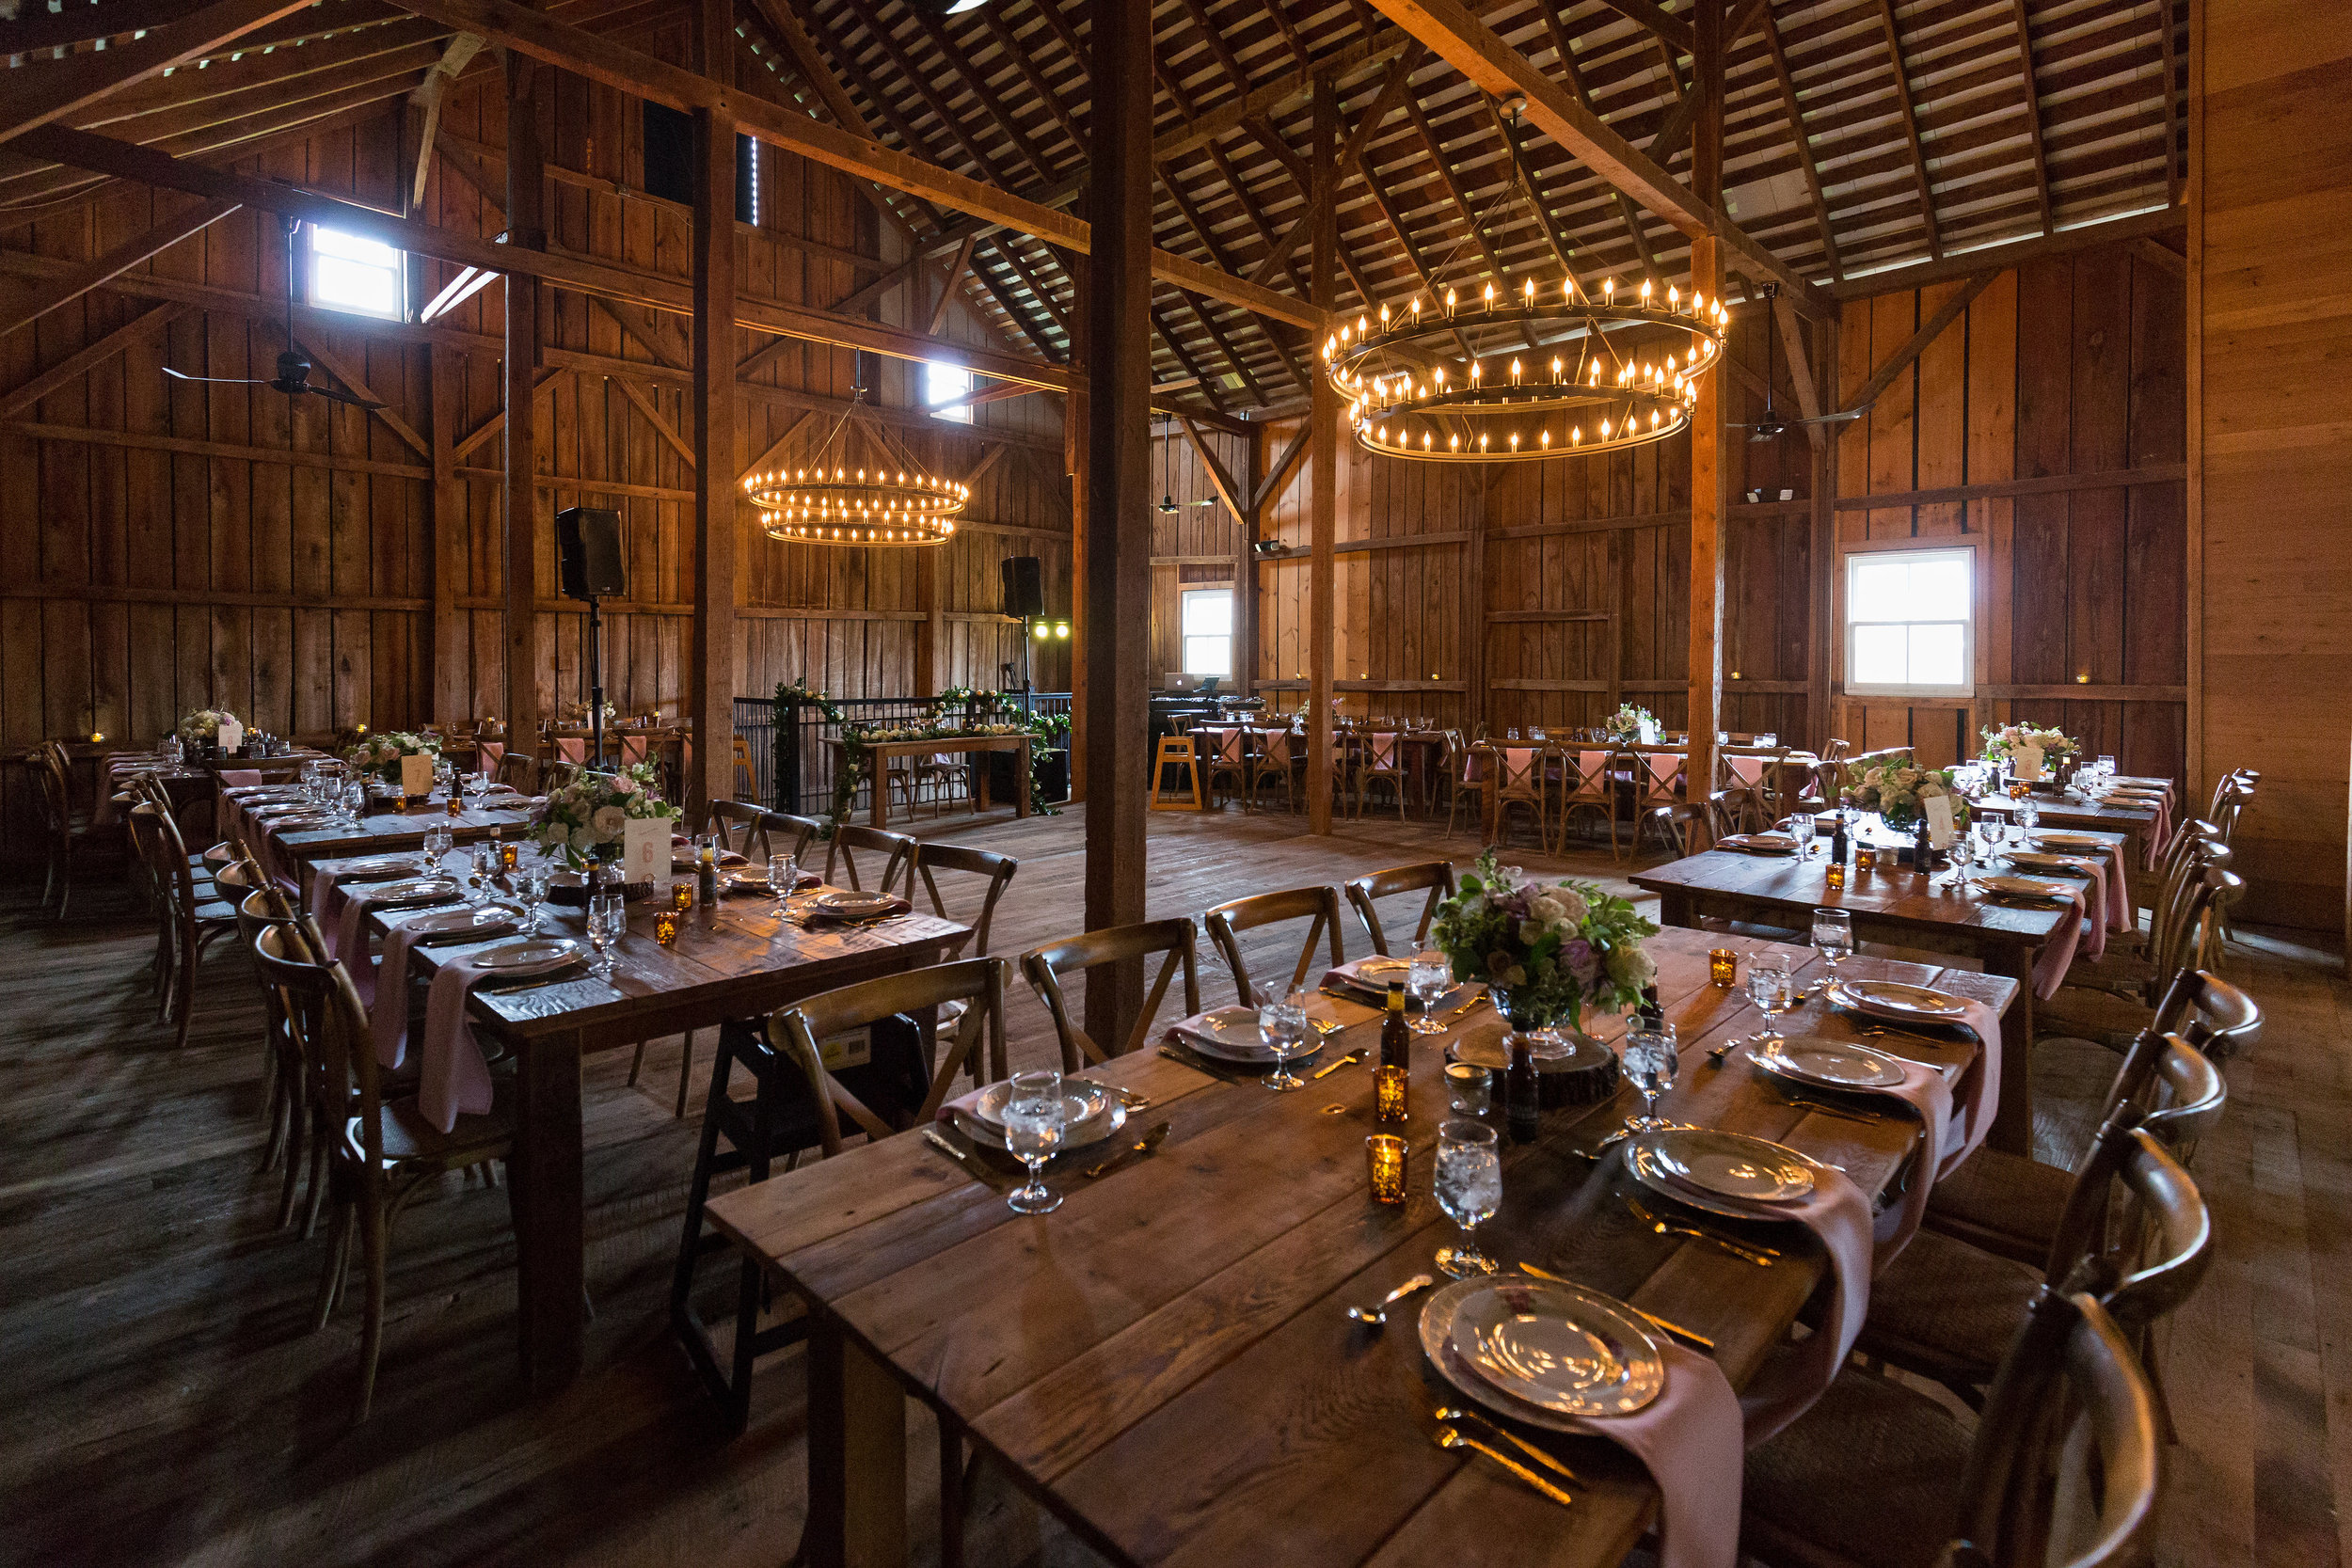 Kate & Jason Wedding; Caterer: Old Blue BBQ; Venue: Tranquility Farms; Photo: Darling Photography